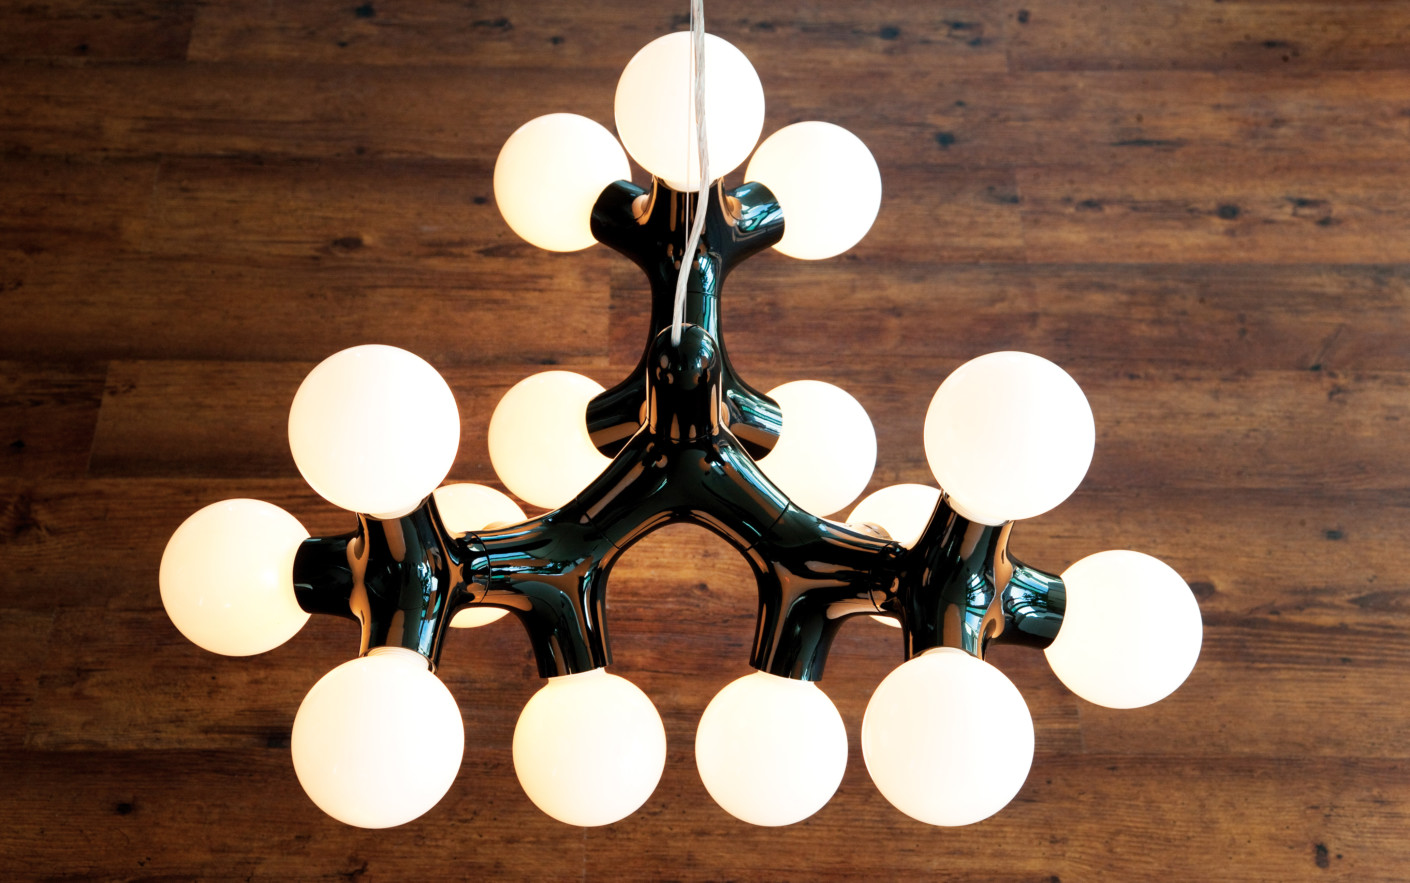 Shop by manufacturer next dna triple pendant light - Dna Chandelier Next Home Collection